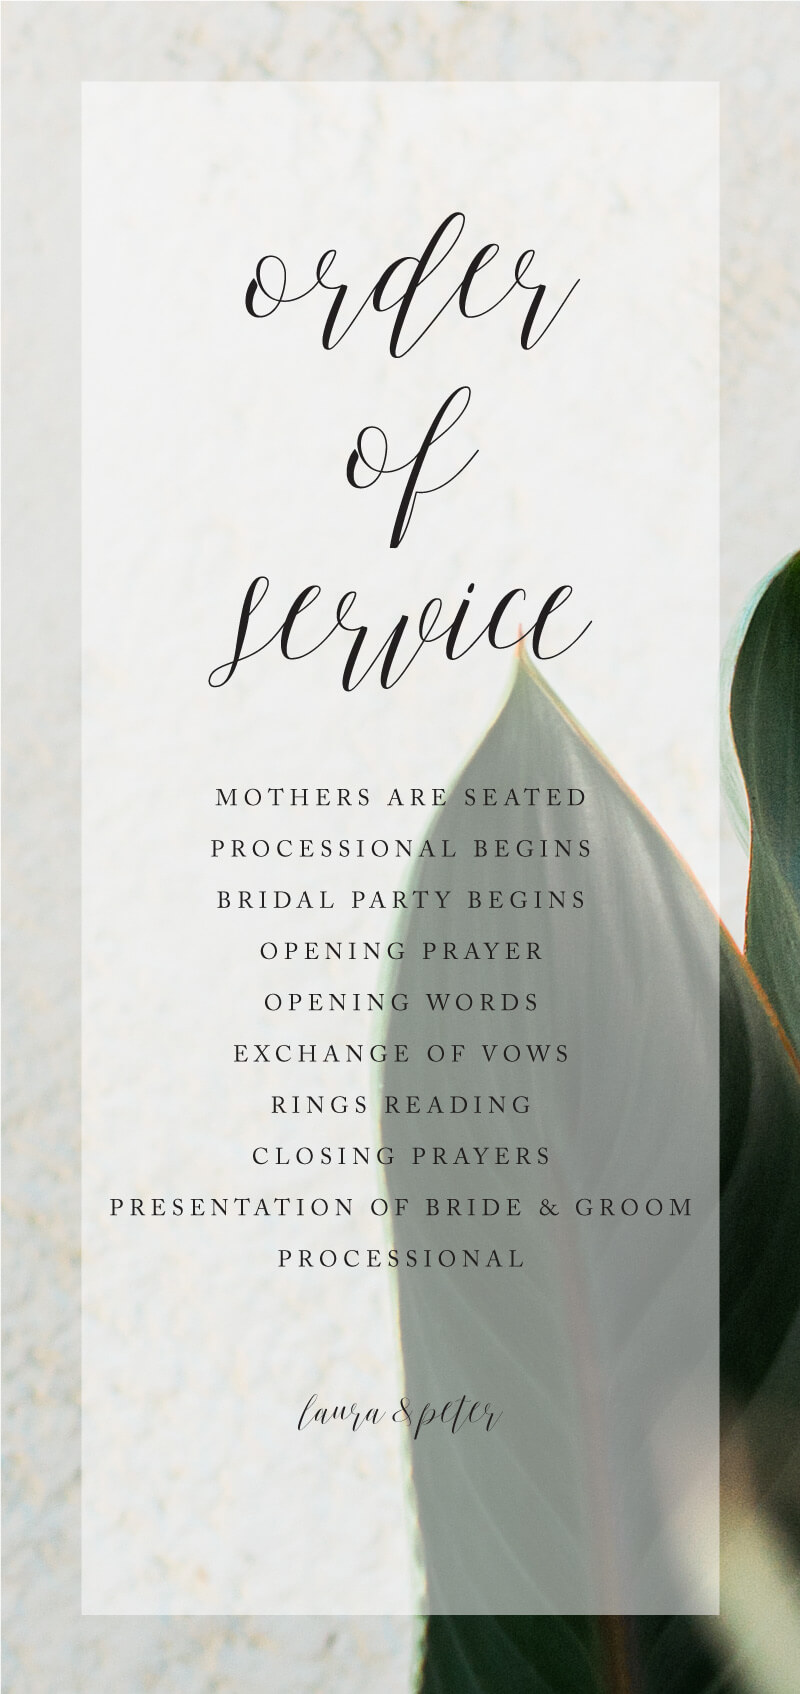 Tropical Leaves - Order Of Service